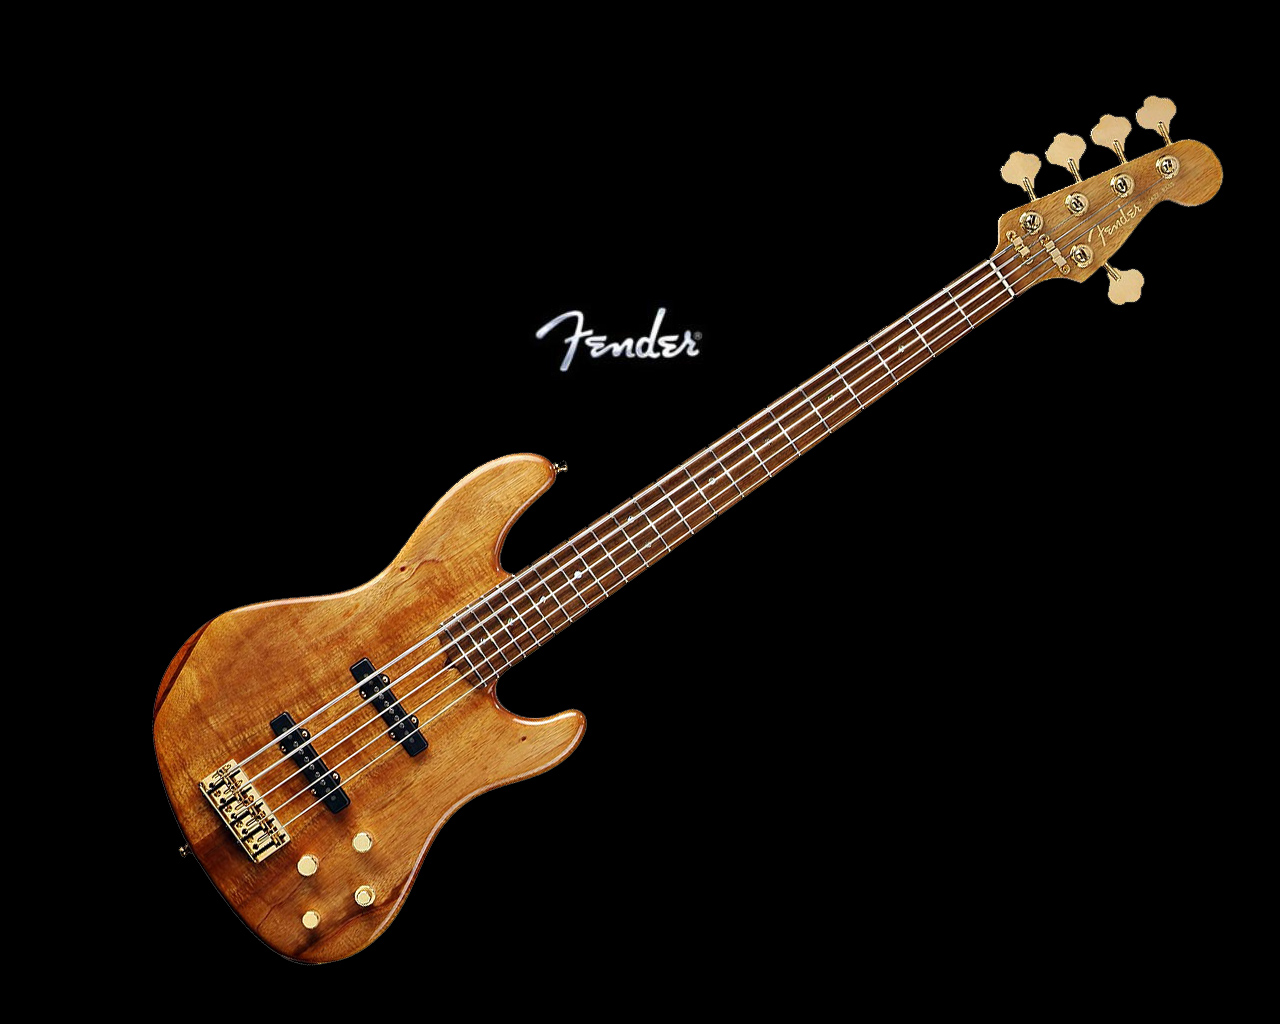 Bass Guitar Wallpaper Wallpapertag: Bass Guitar IPhone Wallpaper